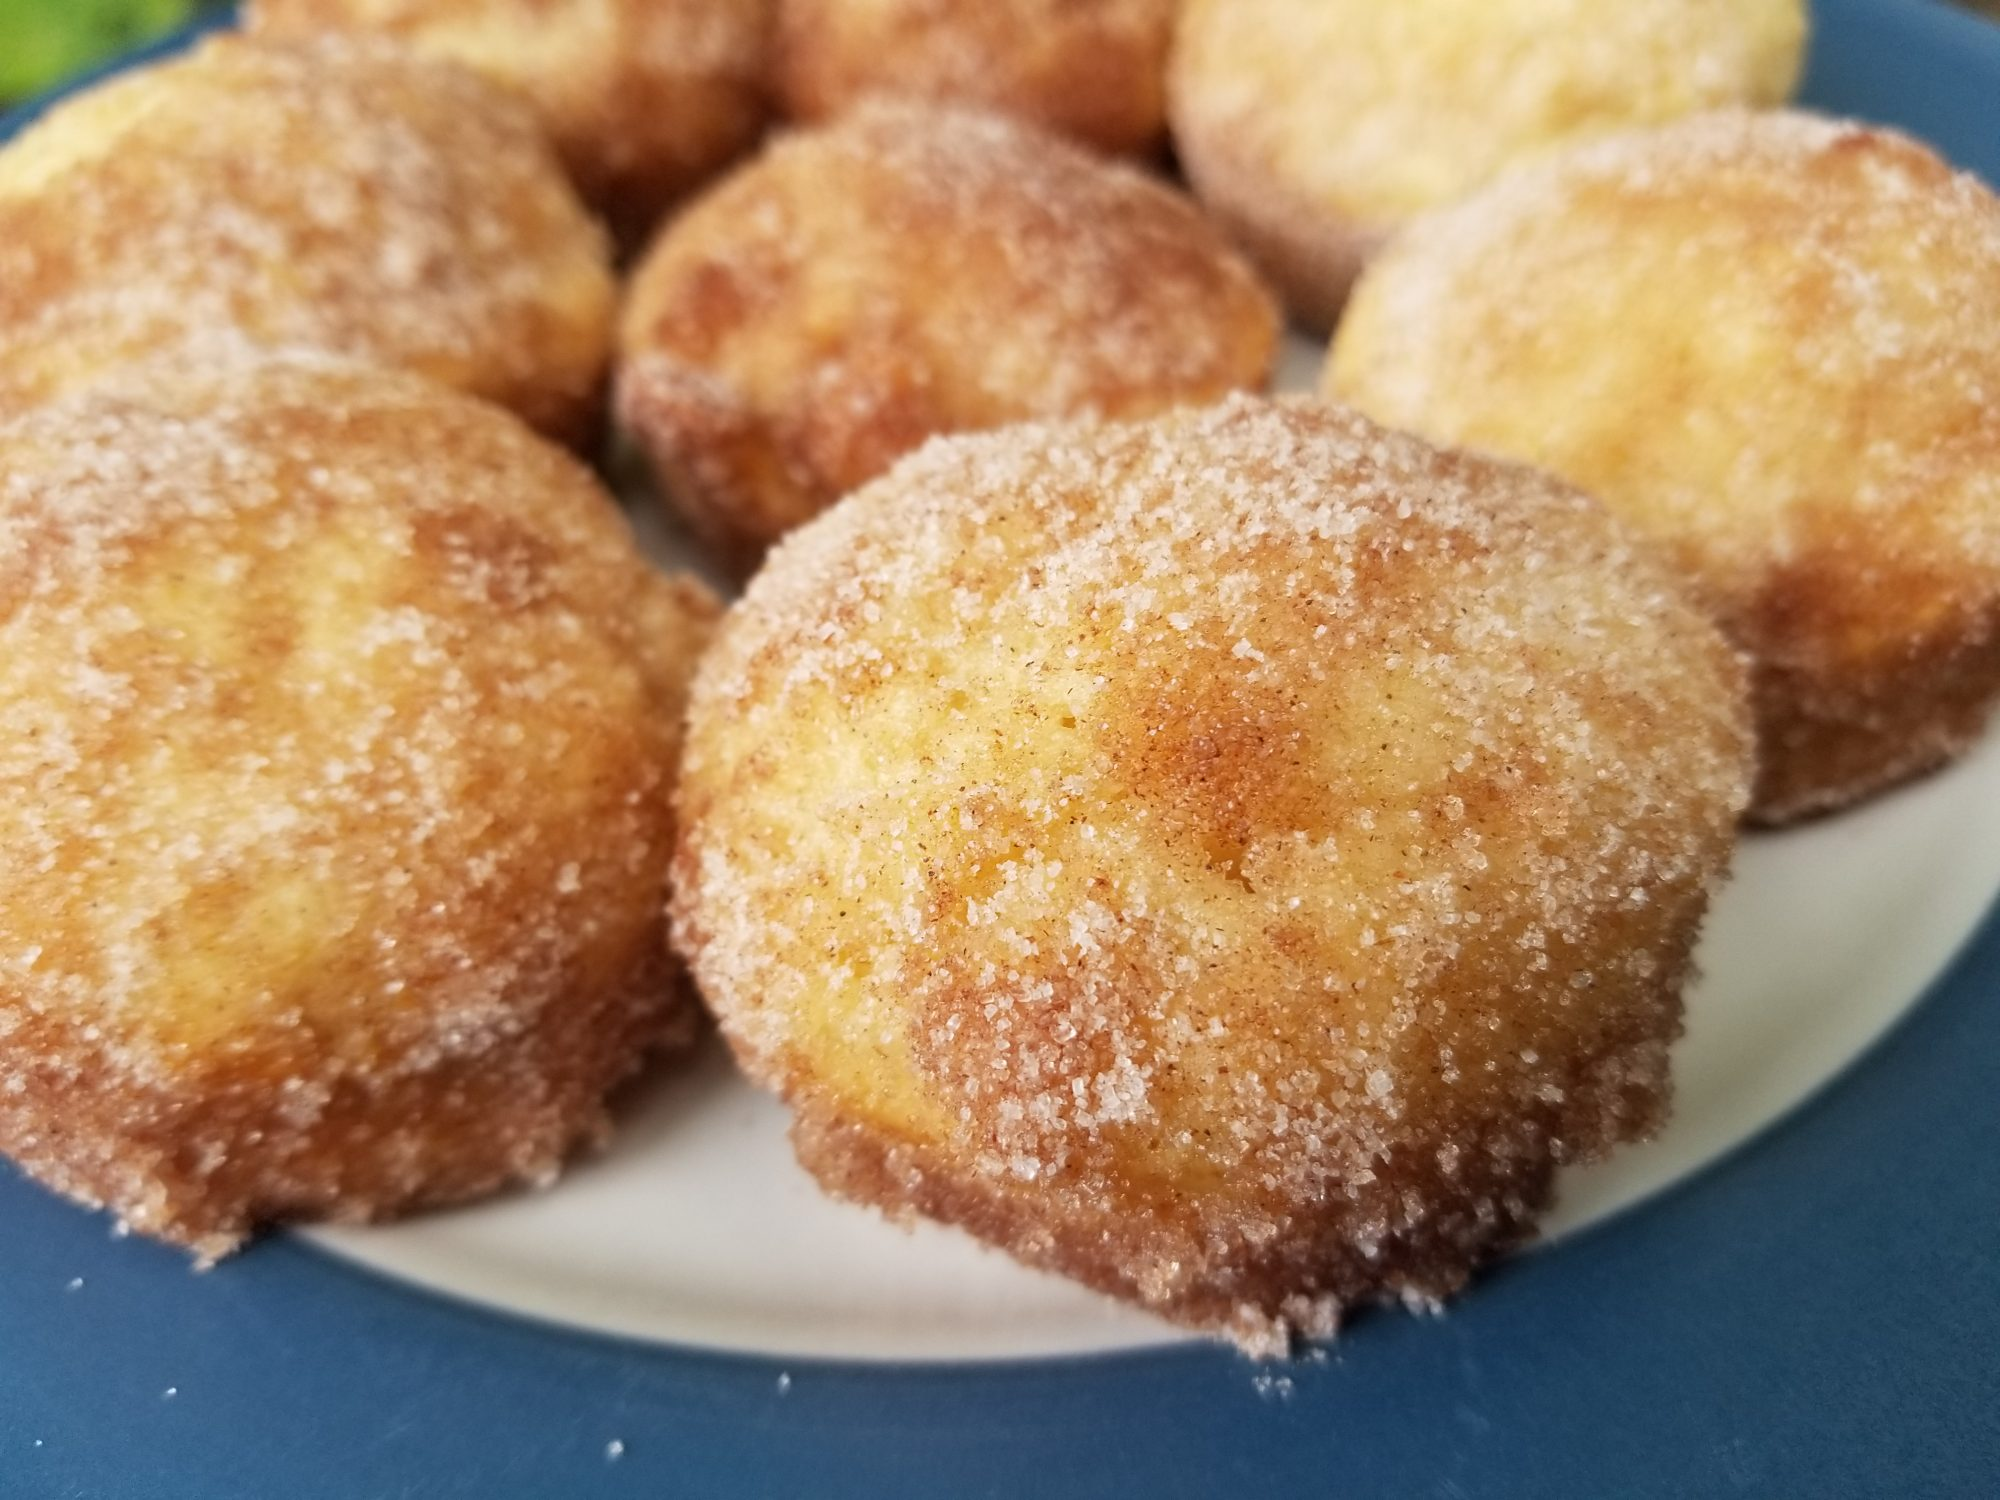 plate of french breakfast puffs dusted with cinnamon sugar